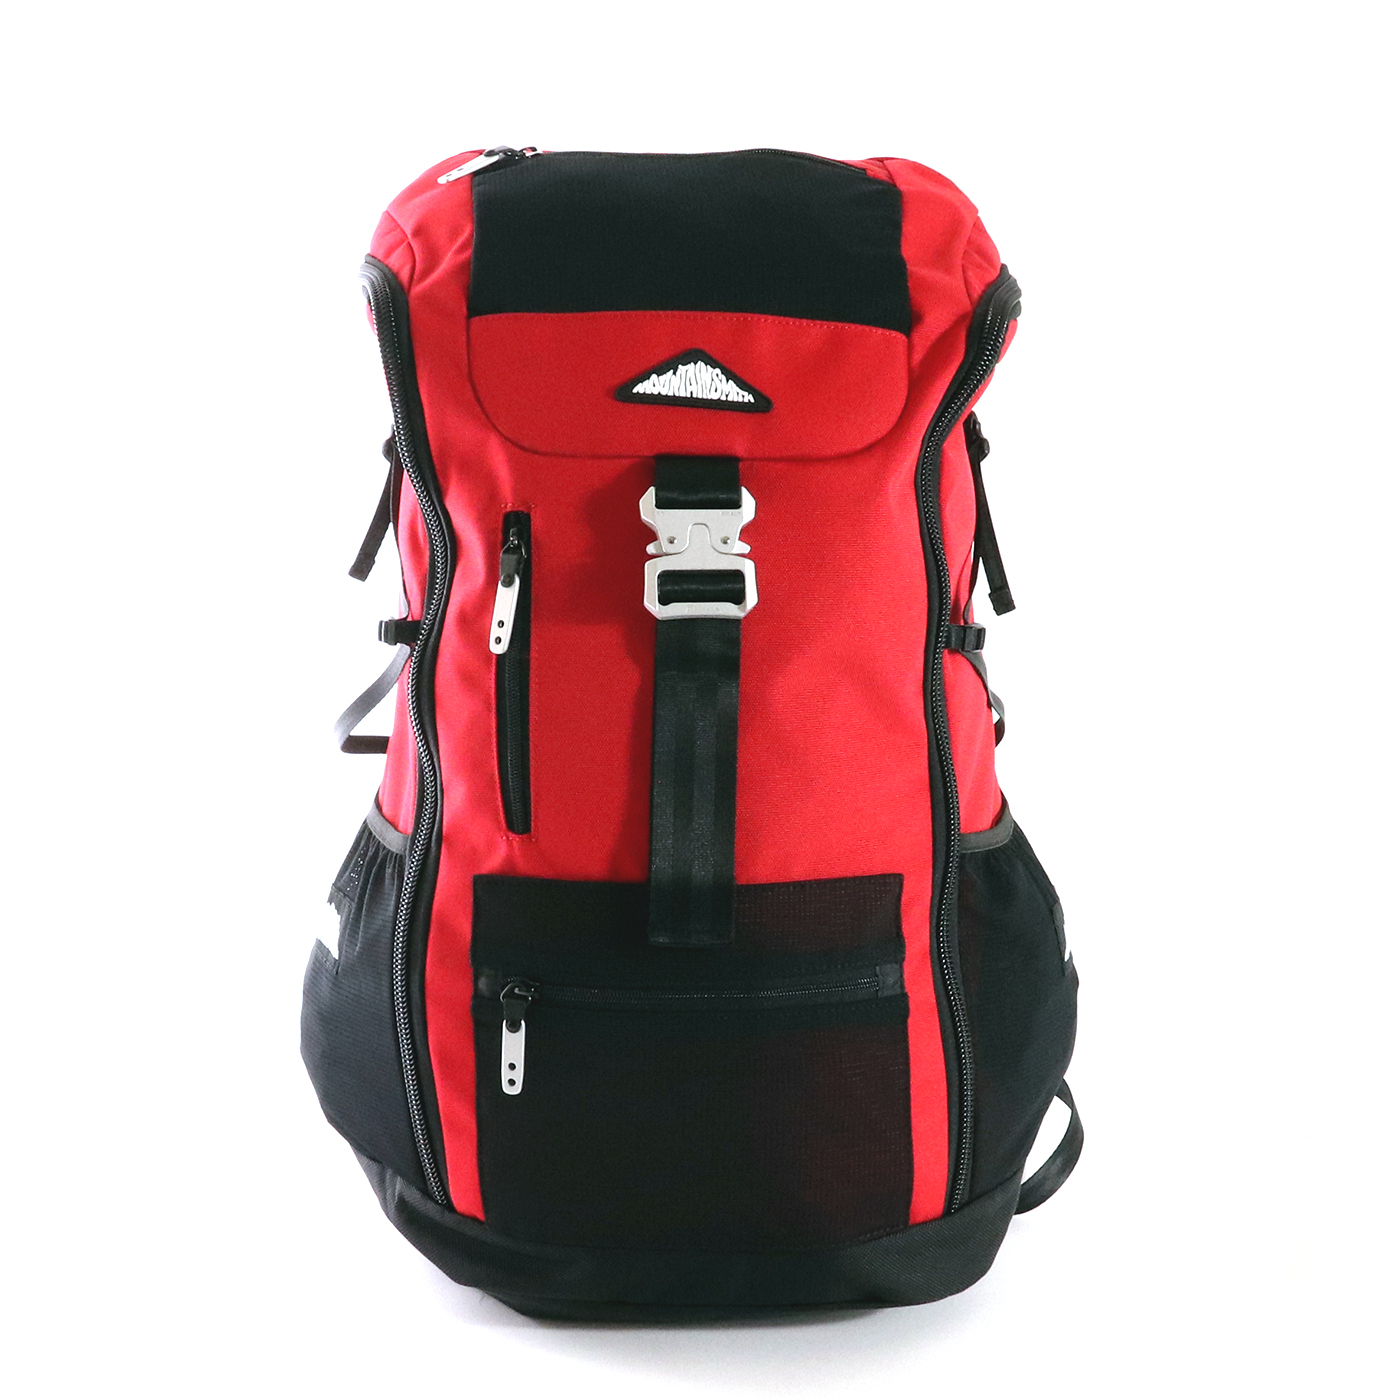 product: WALCOTT / color: RED 1